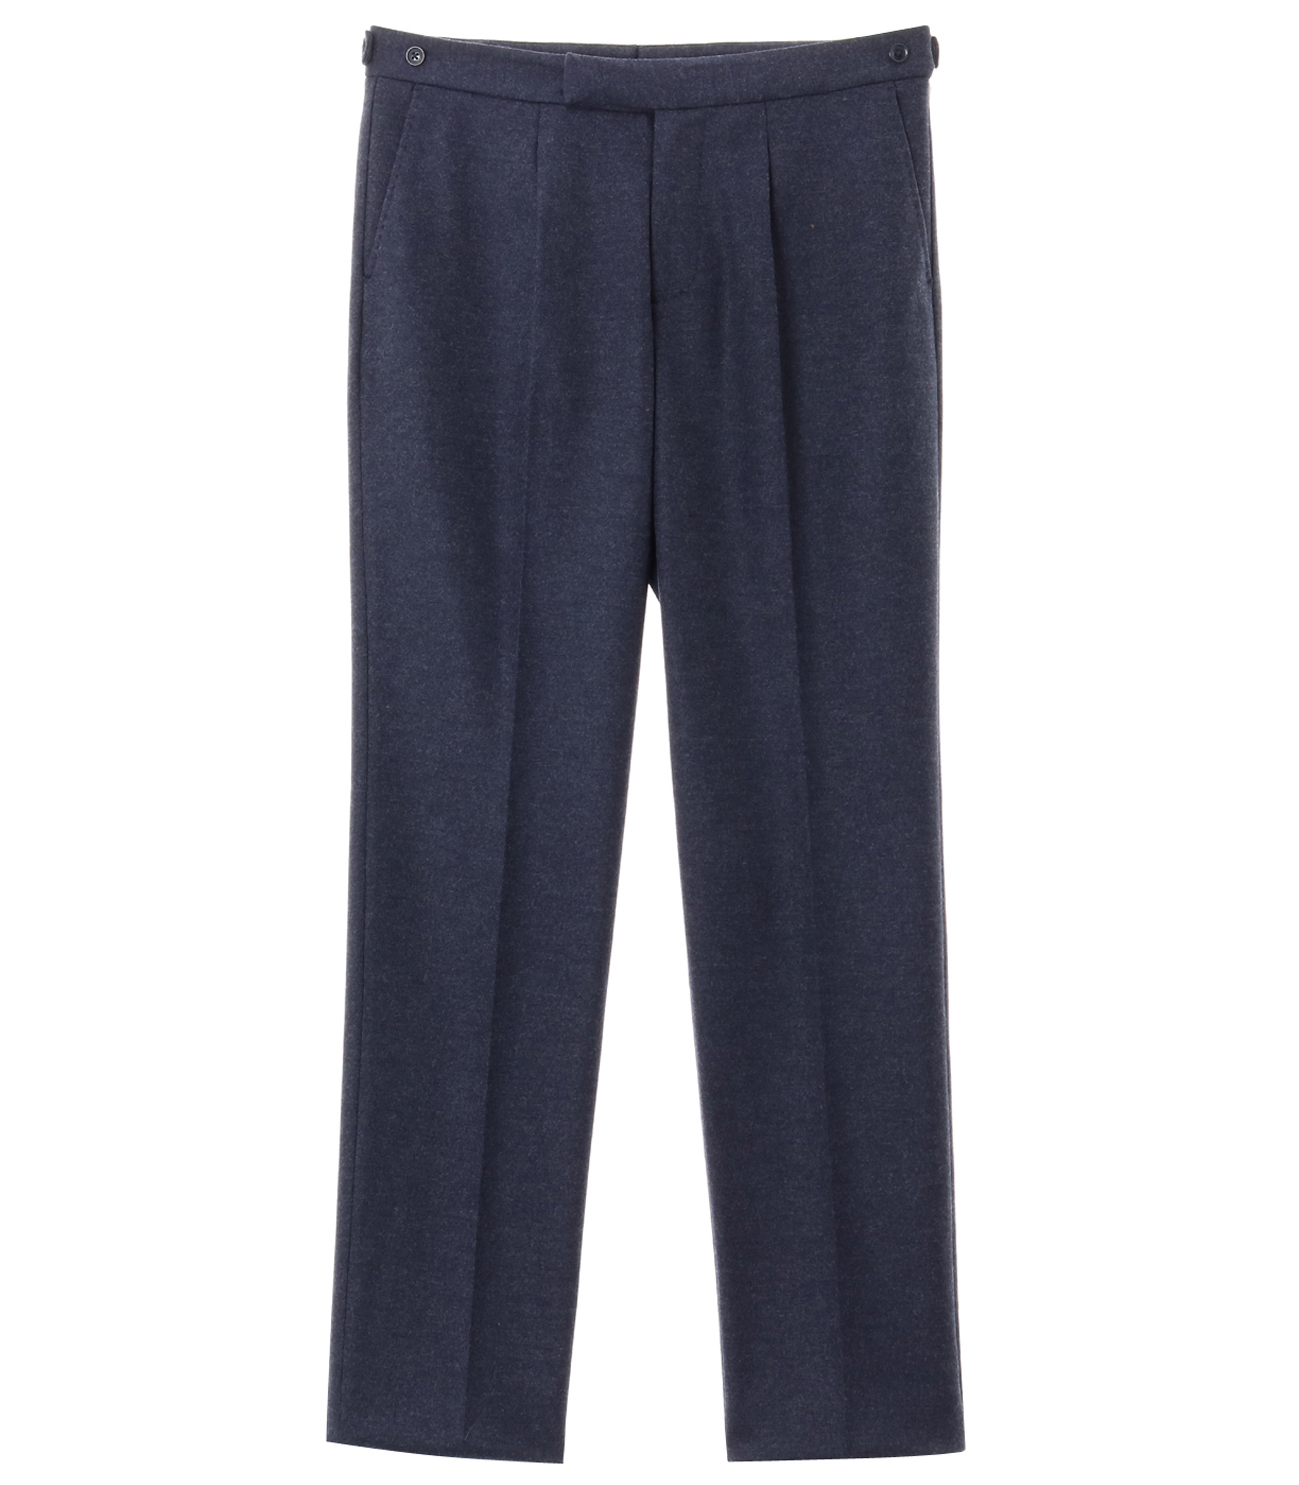 flannel smooth pleated pant 詳細画像 navy 1